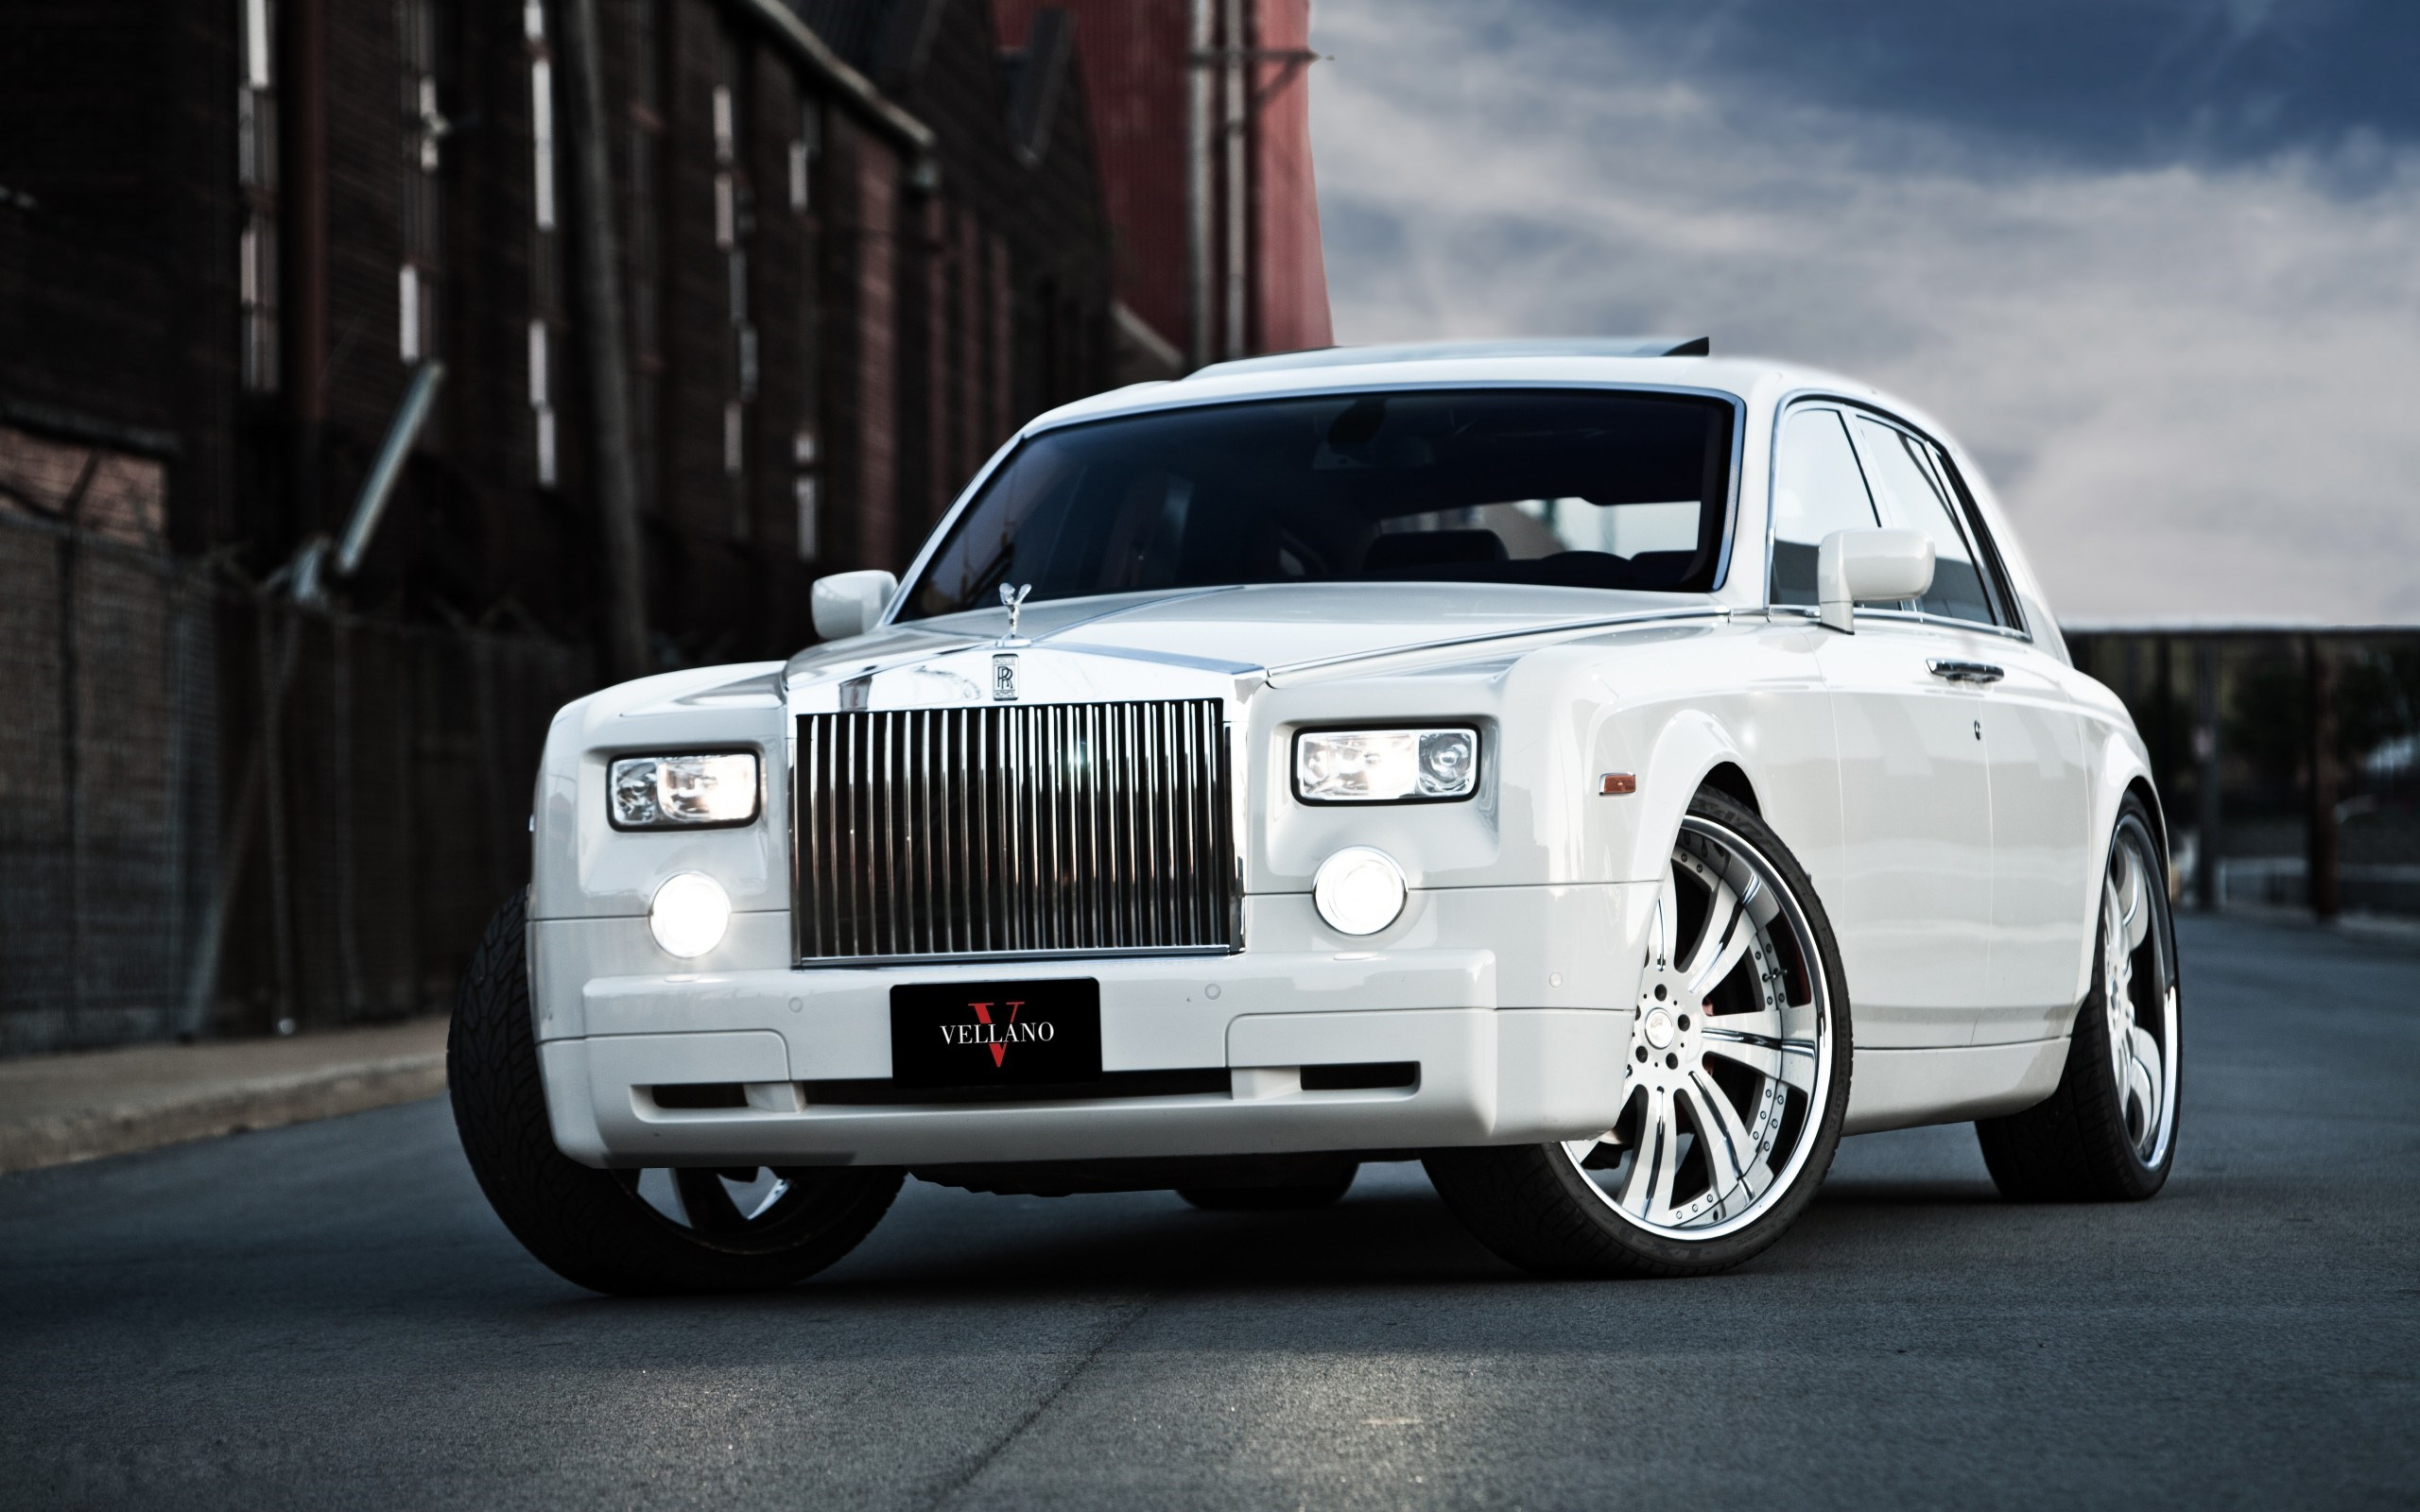 Slender Rolls Royce Phantom Custom Big Rims White Hd Wallpaper